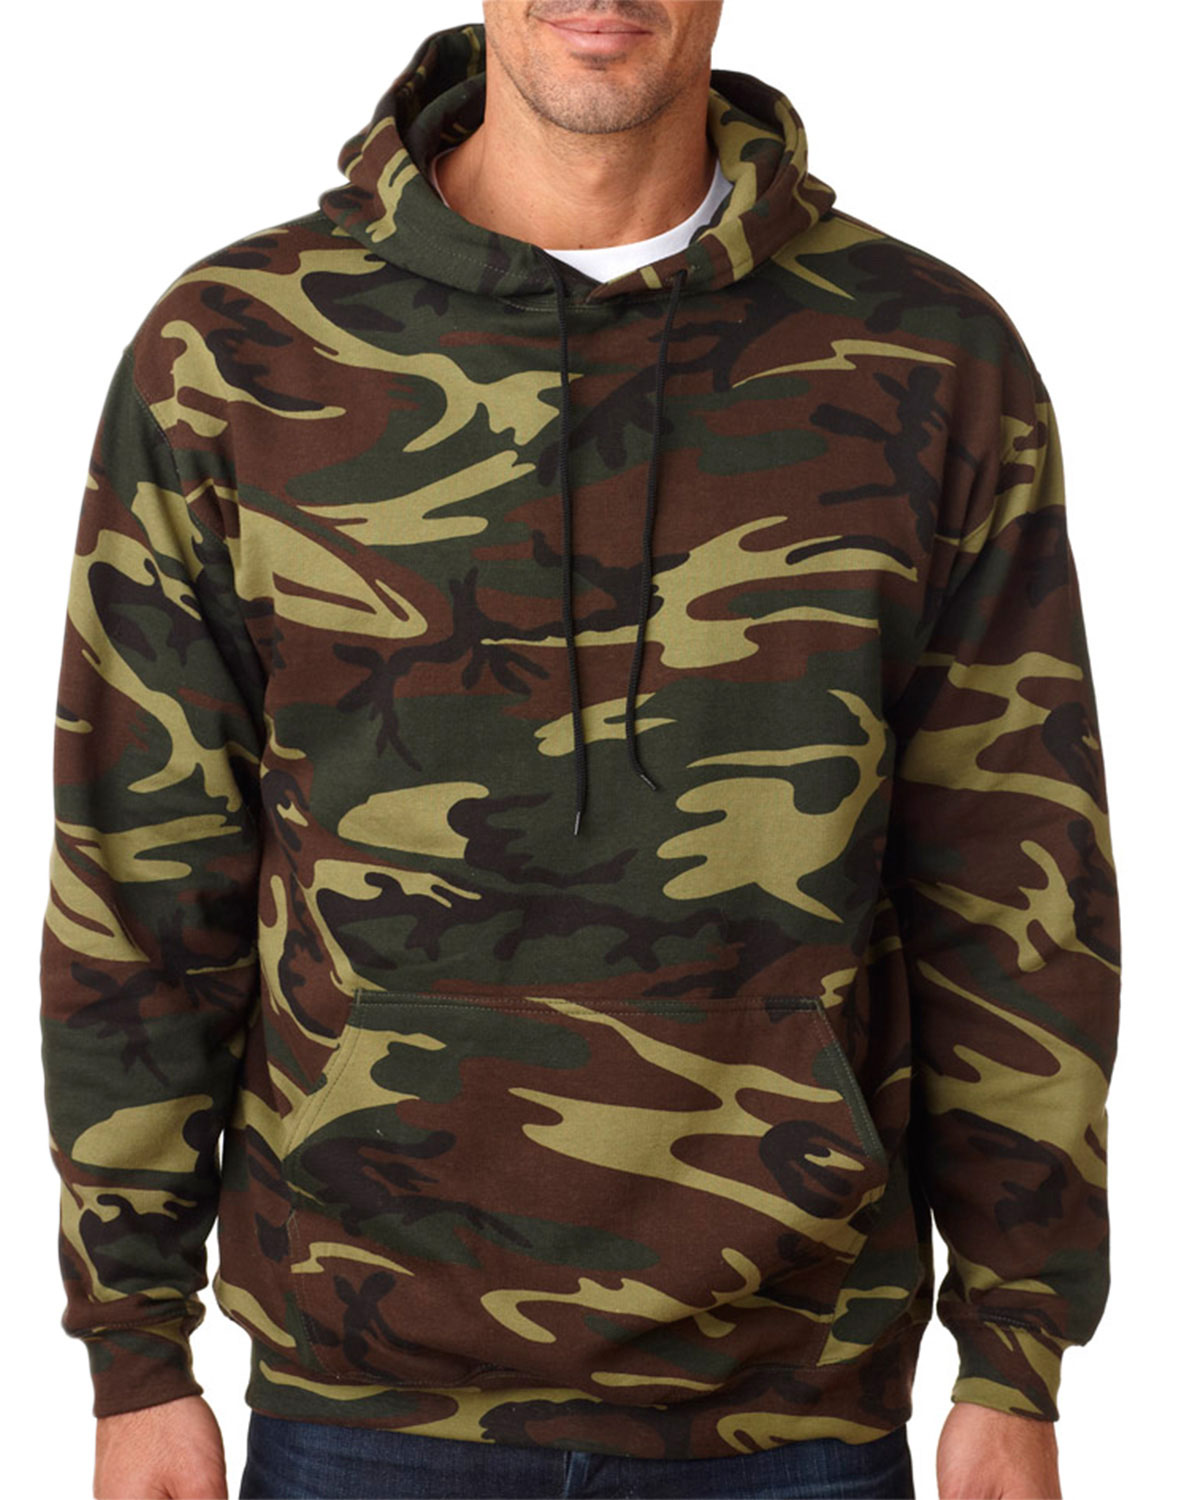 Fortunately, you can leave the sewing machine alone and find a range of camo sweatshirts that are perfect for your next trip into the wilds. Camo sweatshirts are essential for keen hunters because disruptive pattern materials are proven to make for a more efficient hunt.